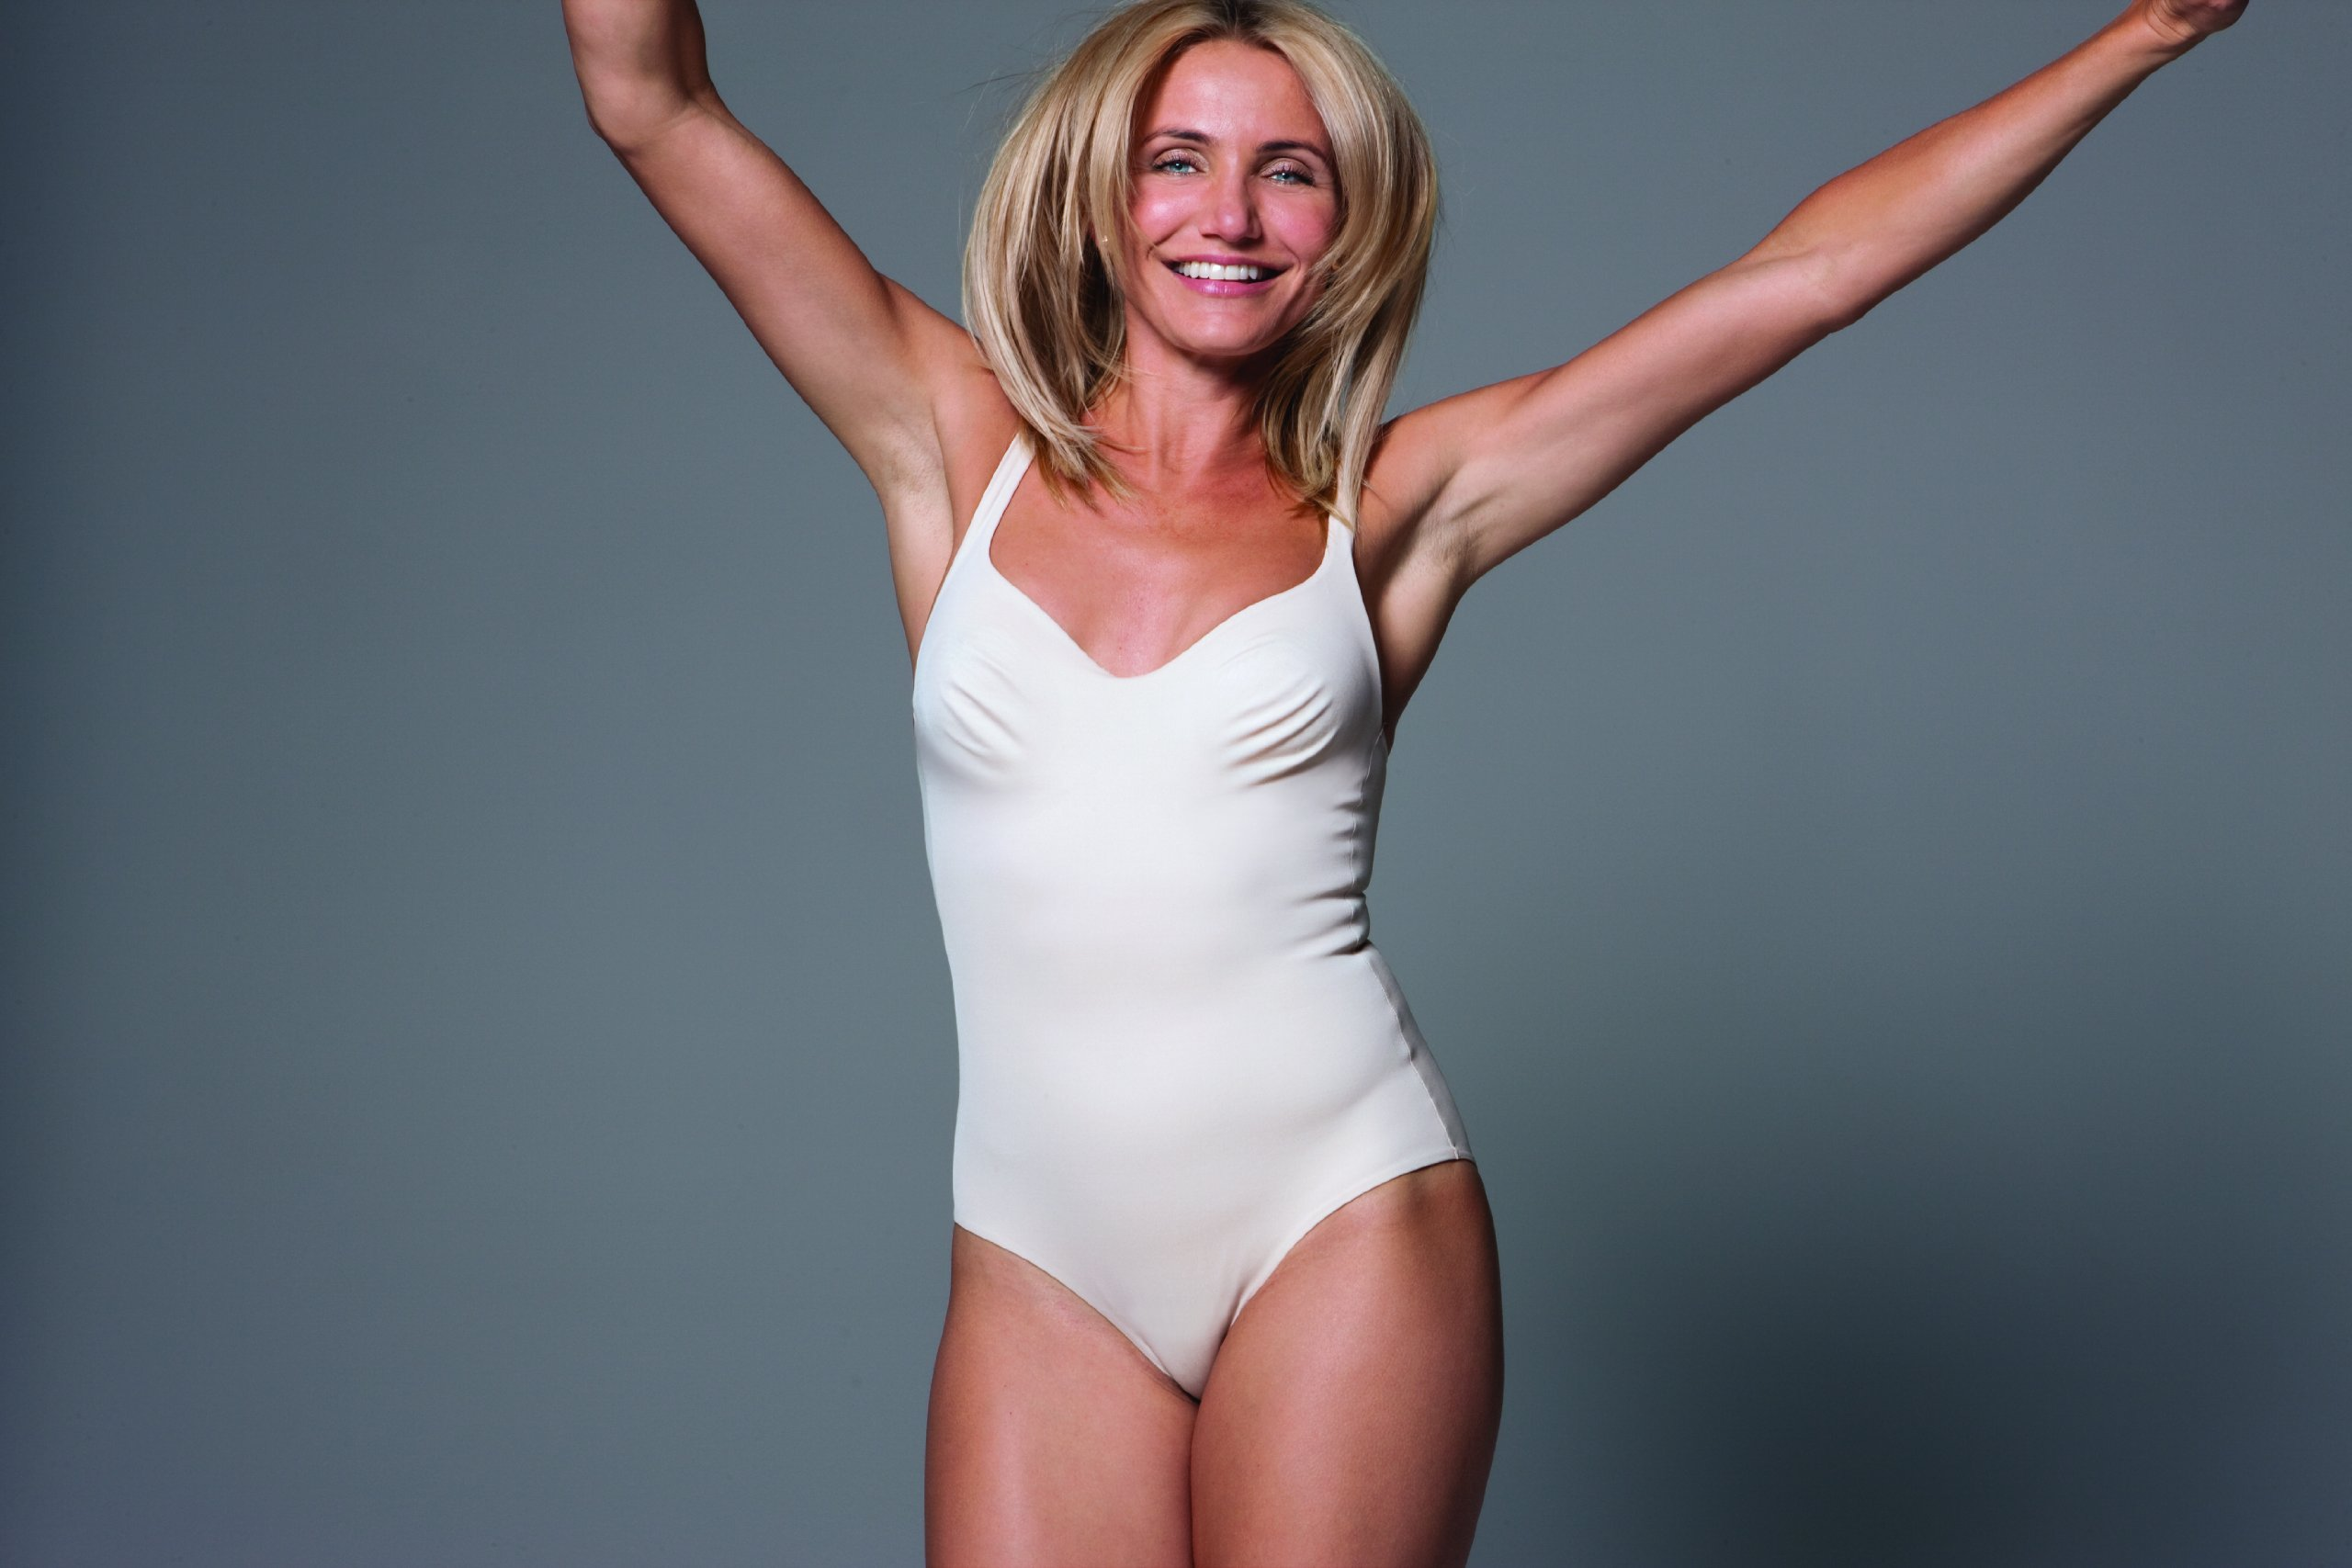 cameron-diaz-s-body-measurements-2